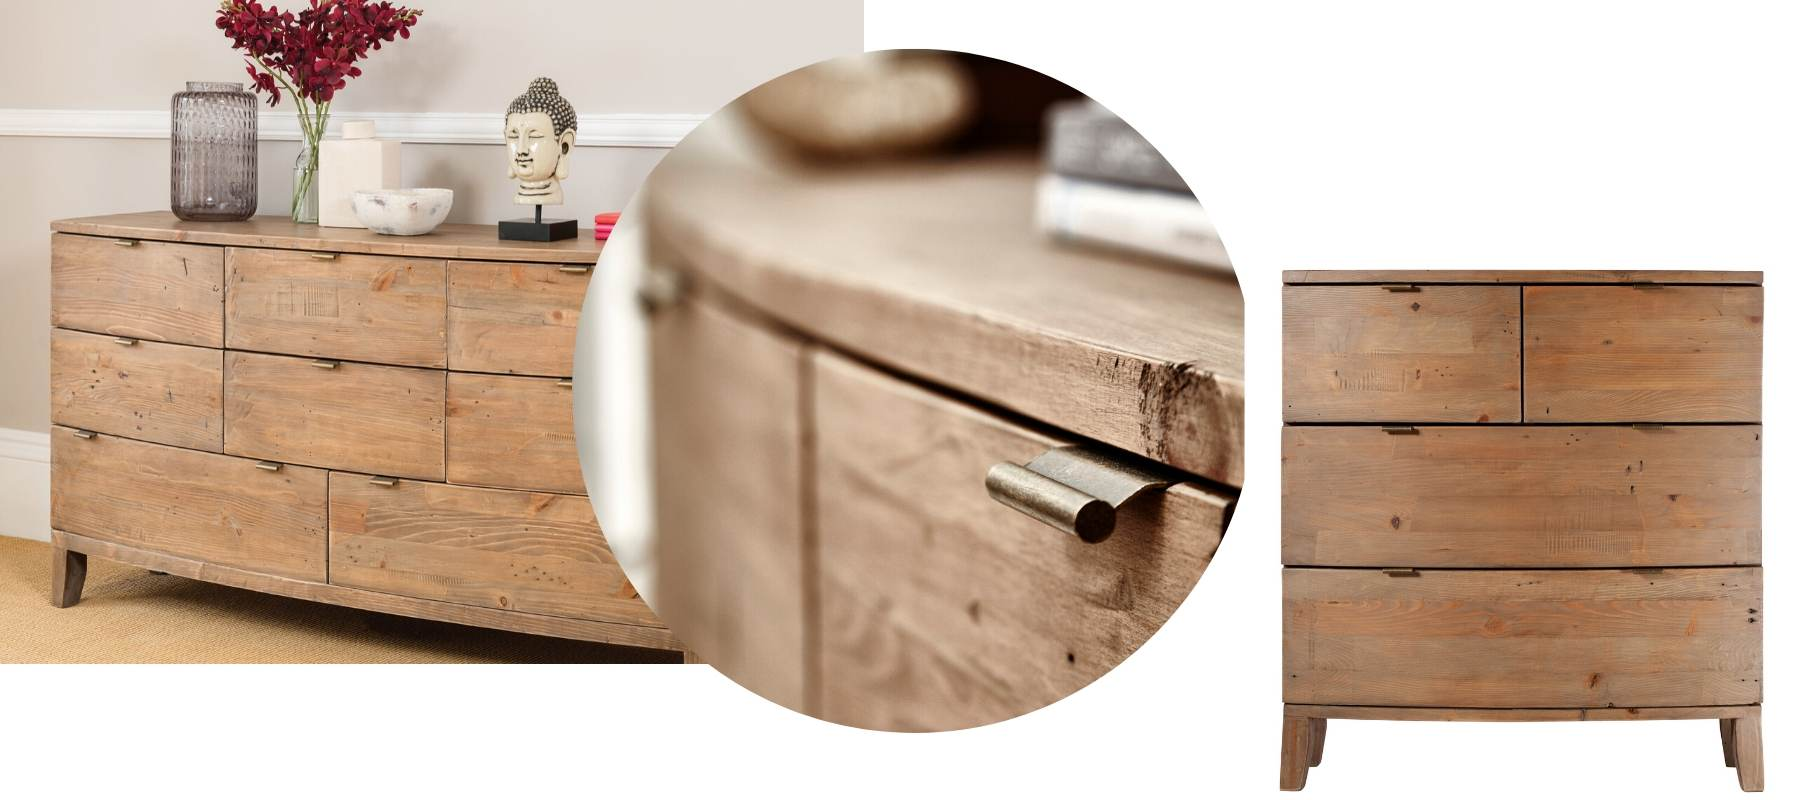 Large wooden chest of drawers, close up of reclaimed wood and medium chest of drawers